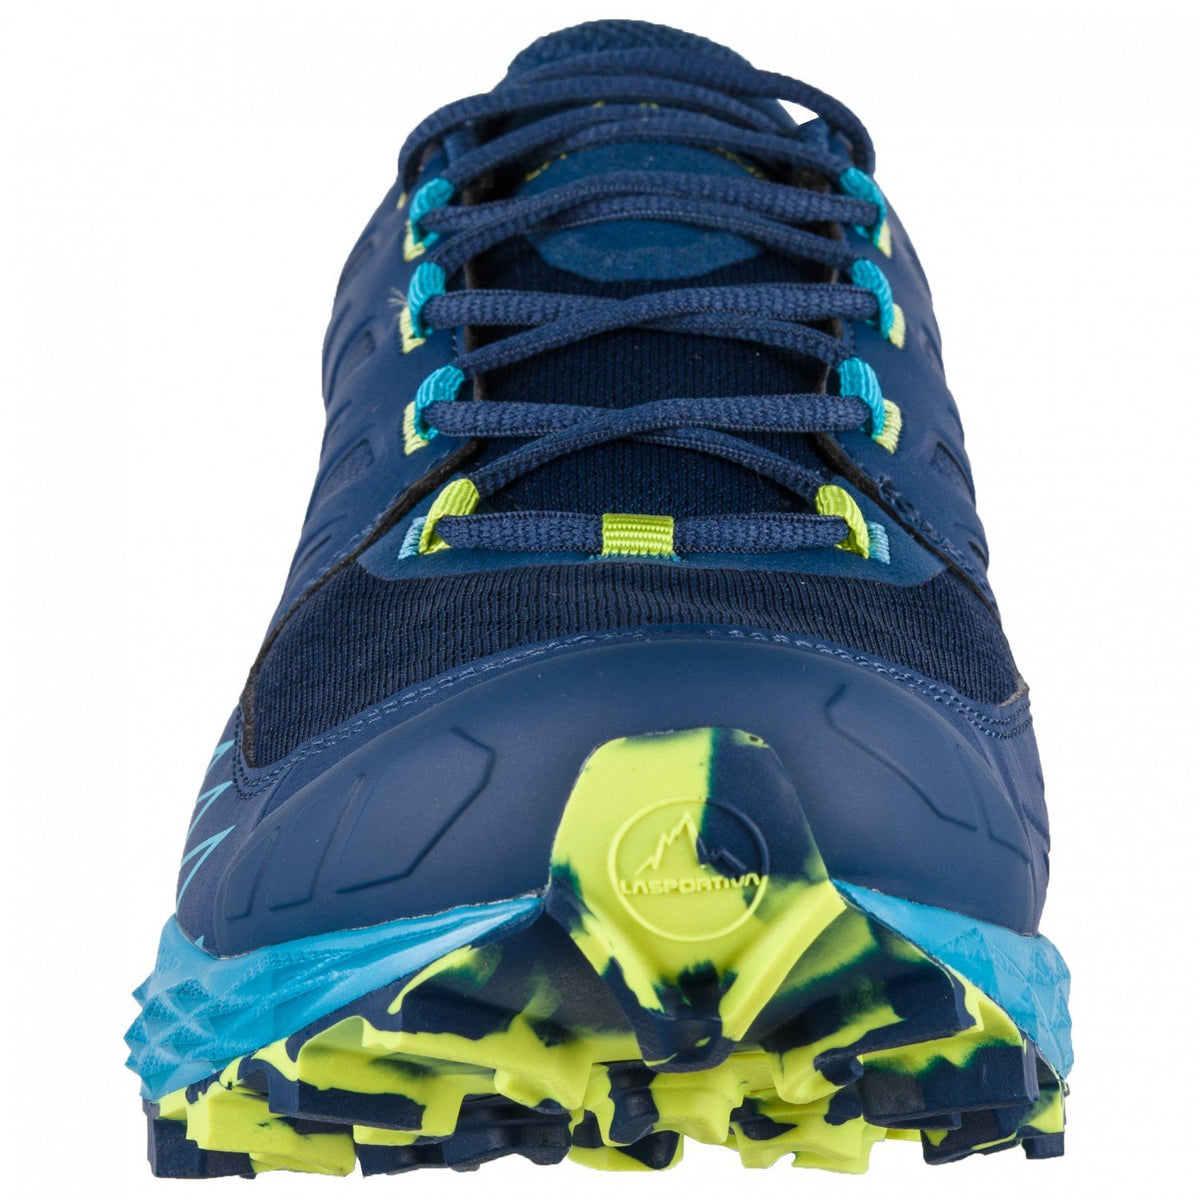 La Sportiva Lycan GTX running shoe, front view showing the laces design detail